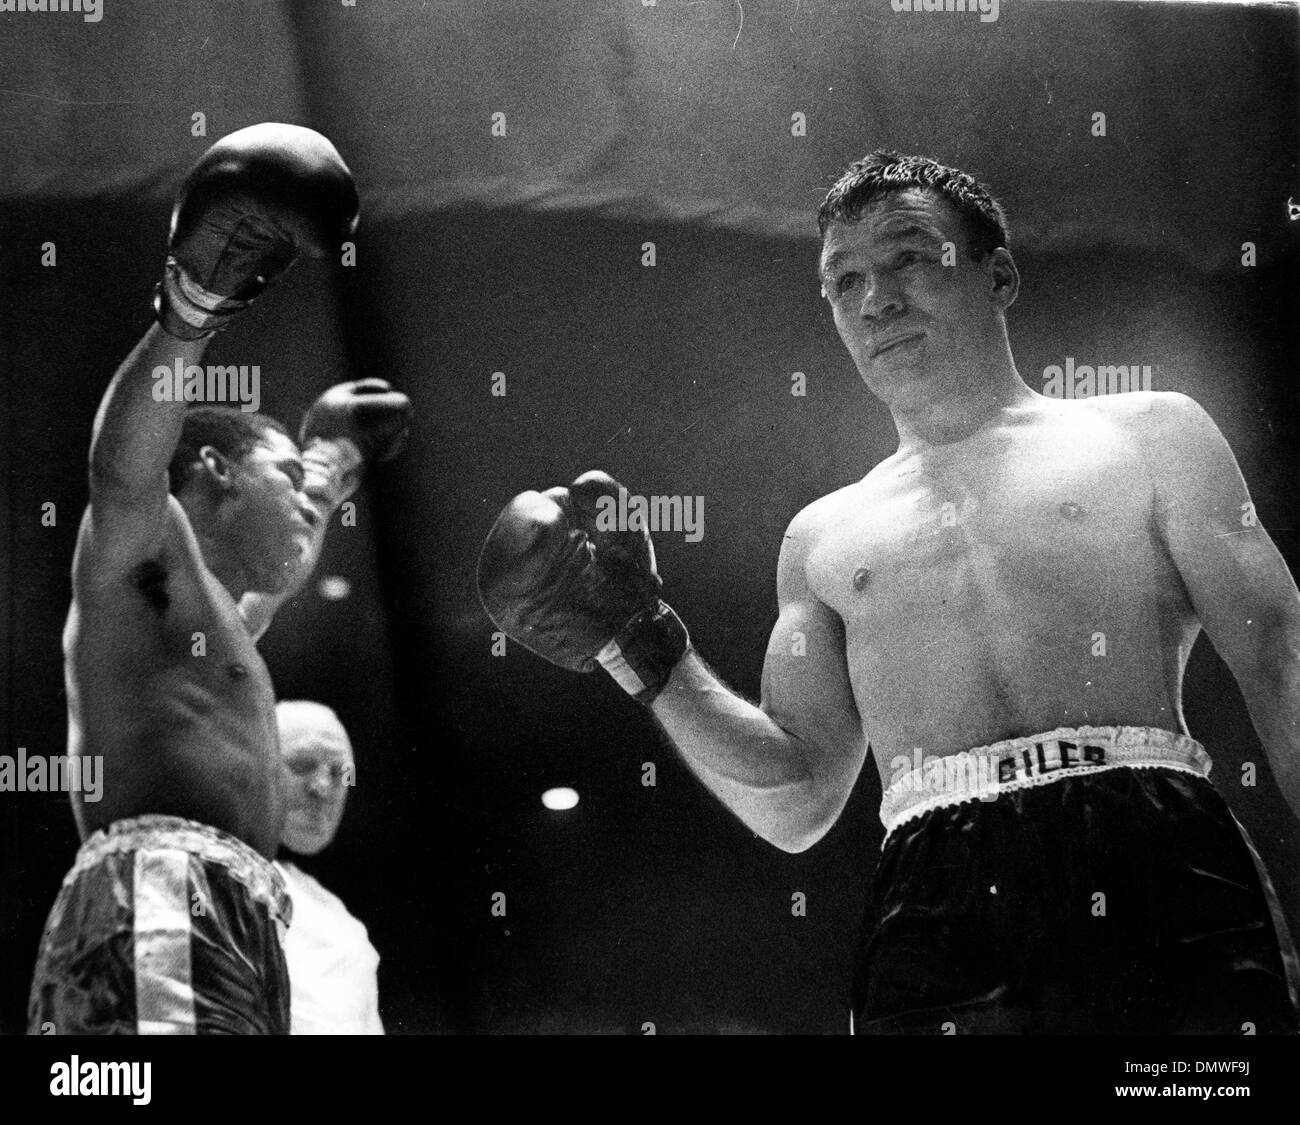 June 5, 1962 - London, England, U.K. - DAVE CHARNLEY was an English lightweight boxer. Known as 'The Dartford Destroyer' Stock Photo